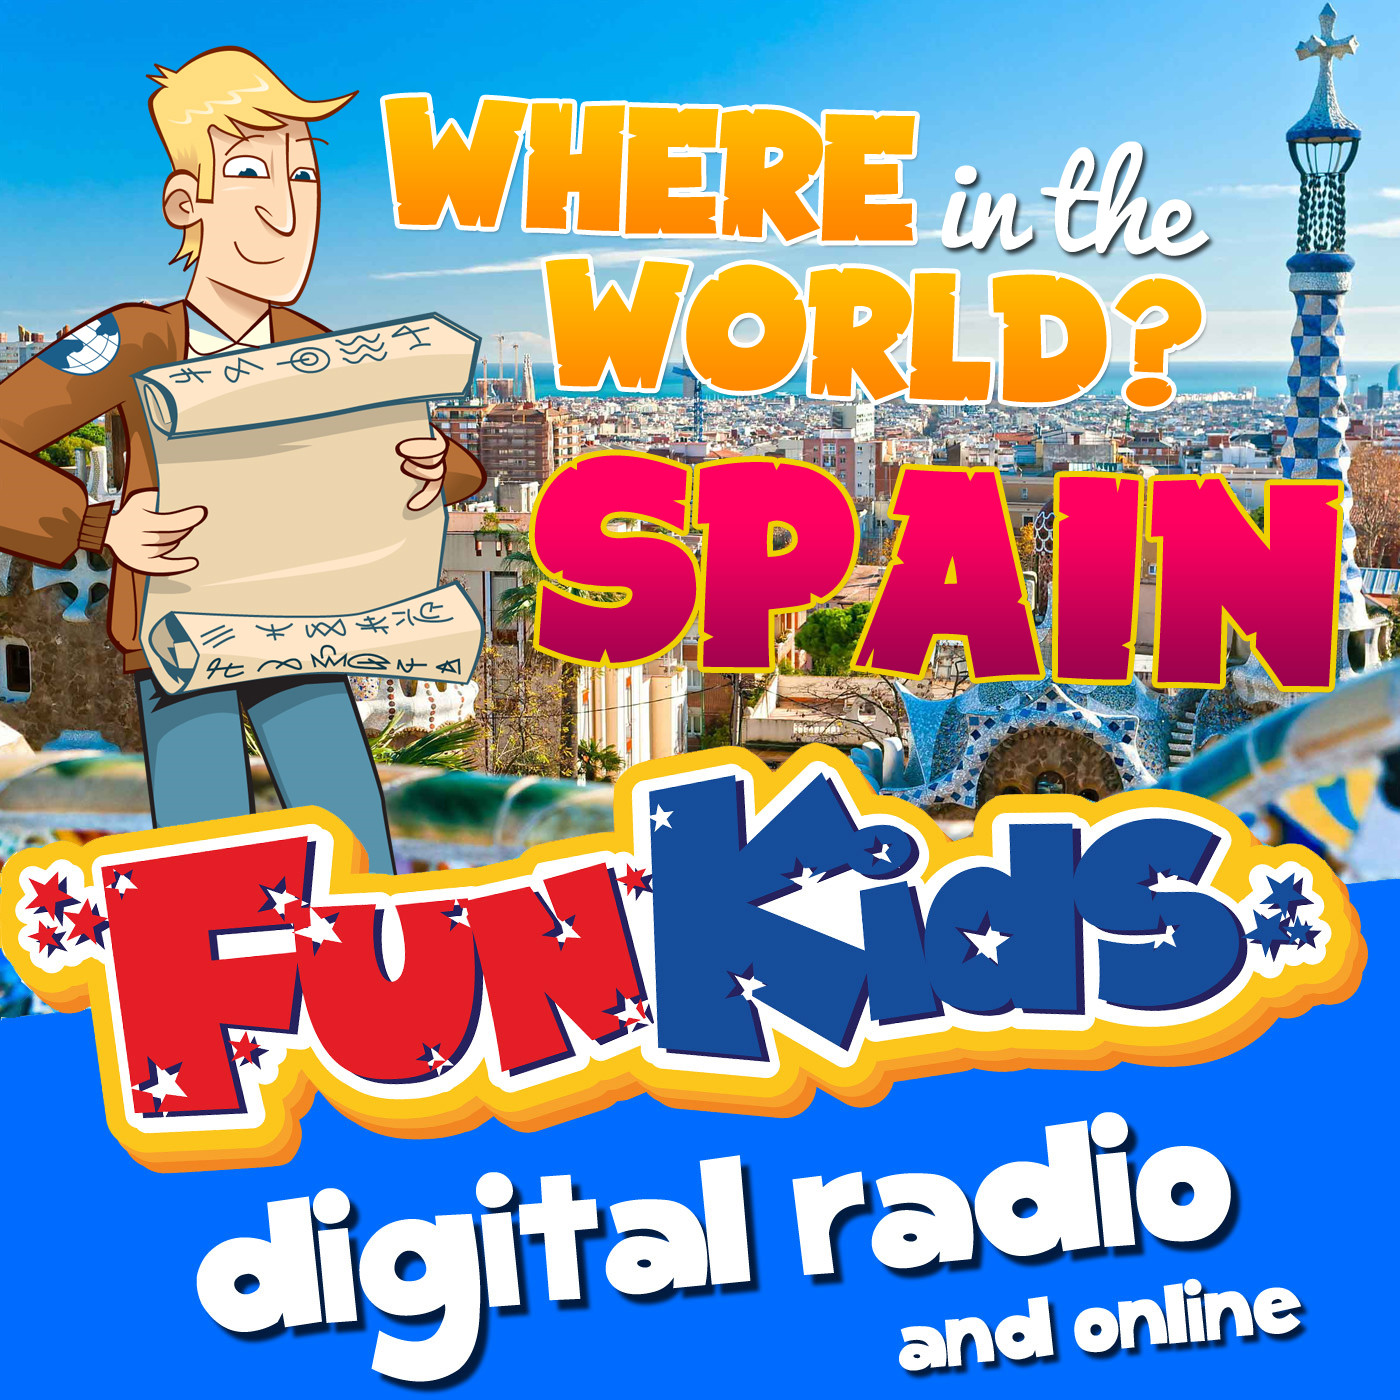 Where in the World? Spain!